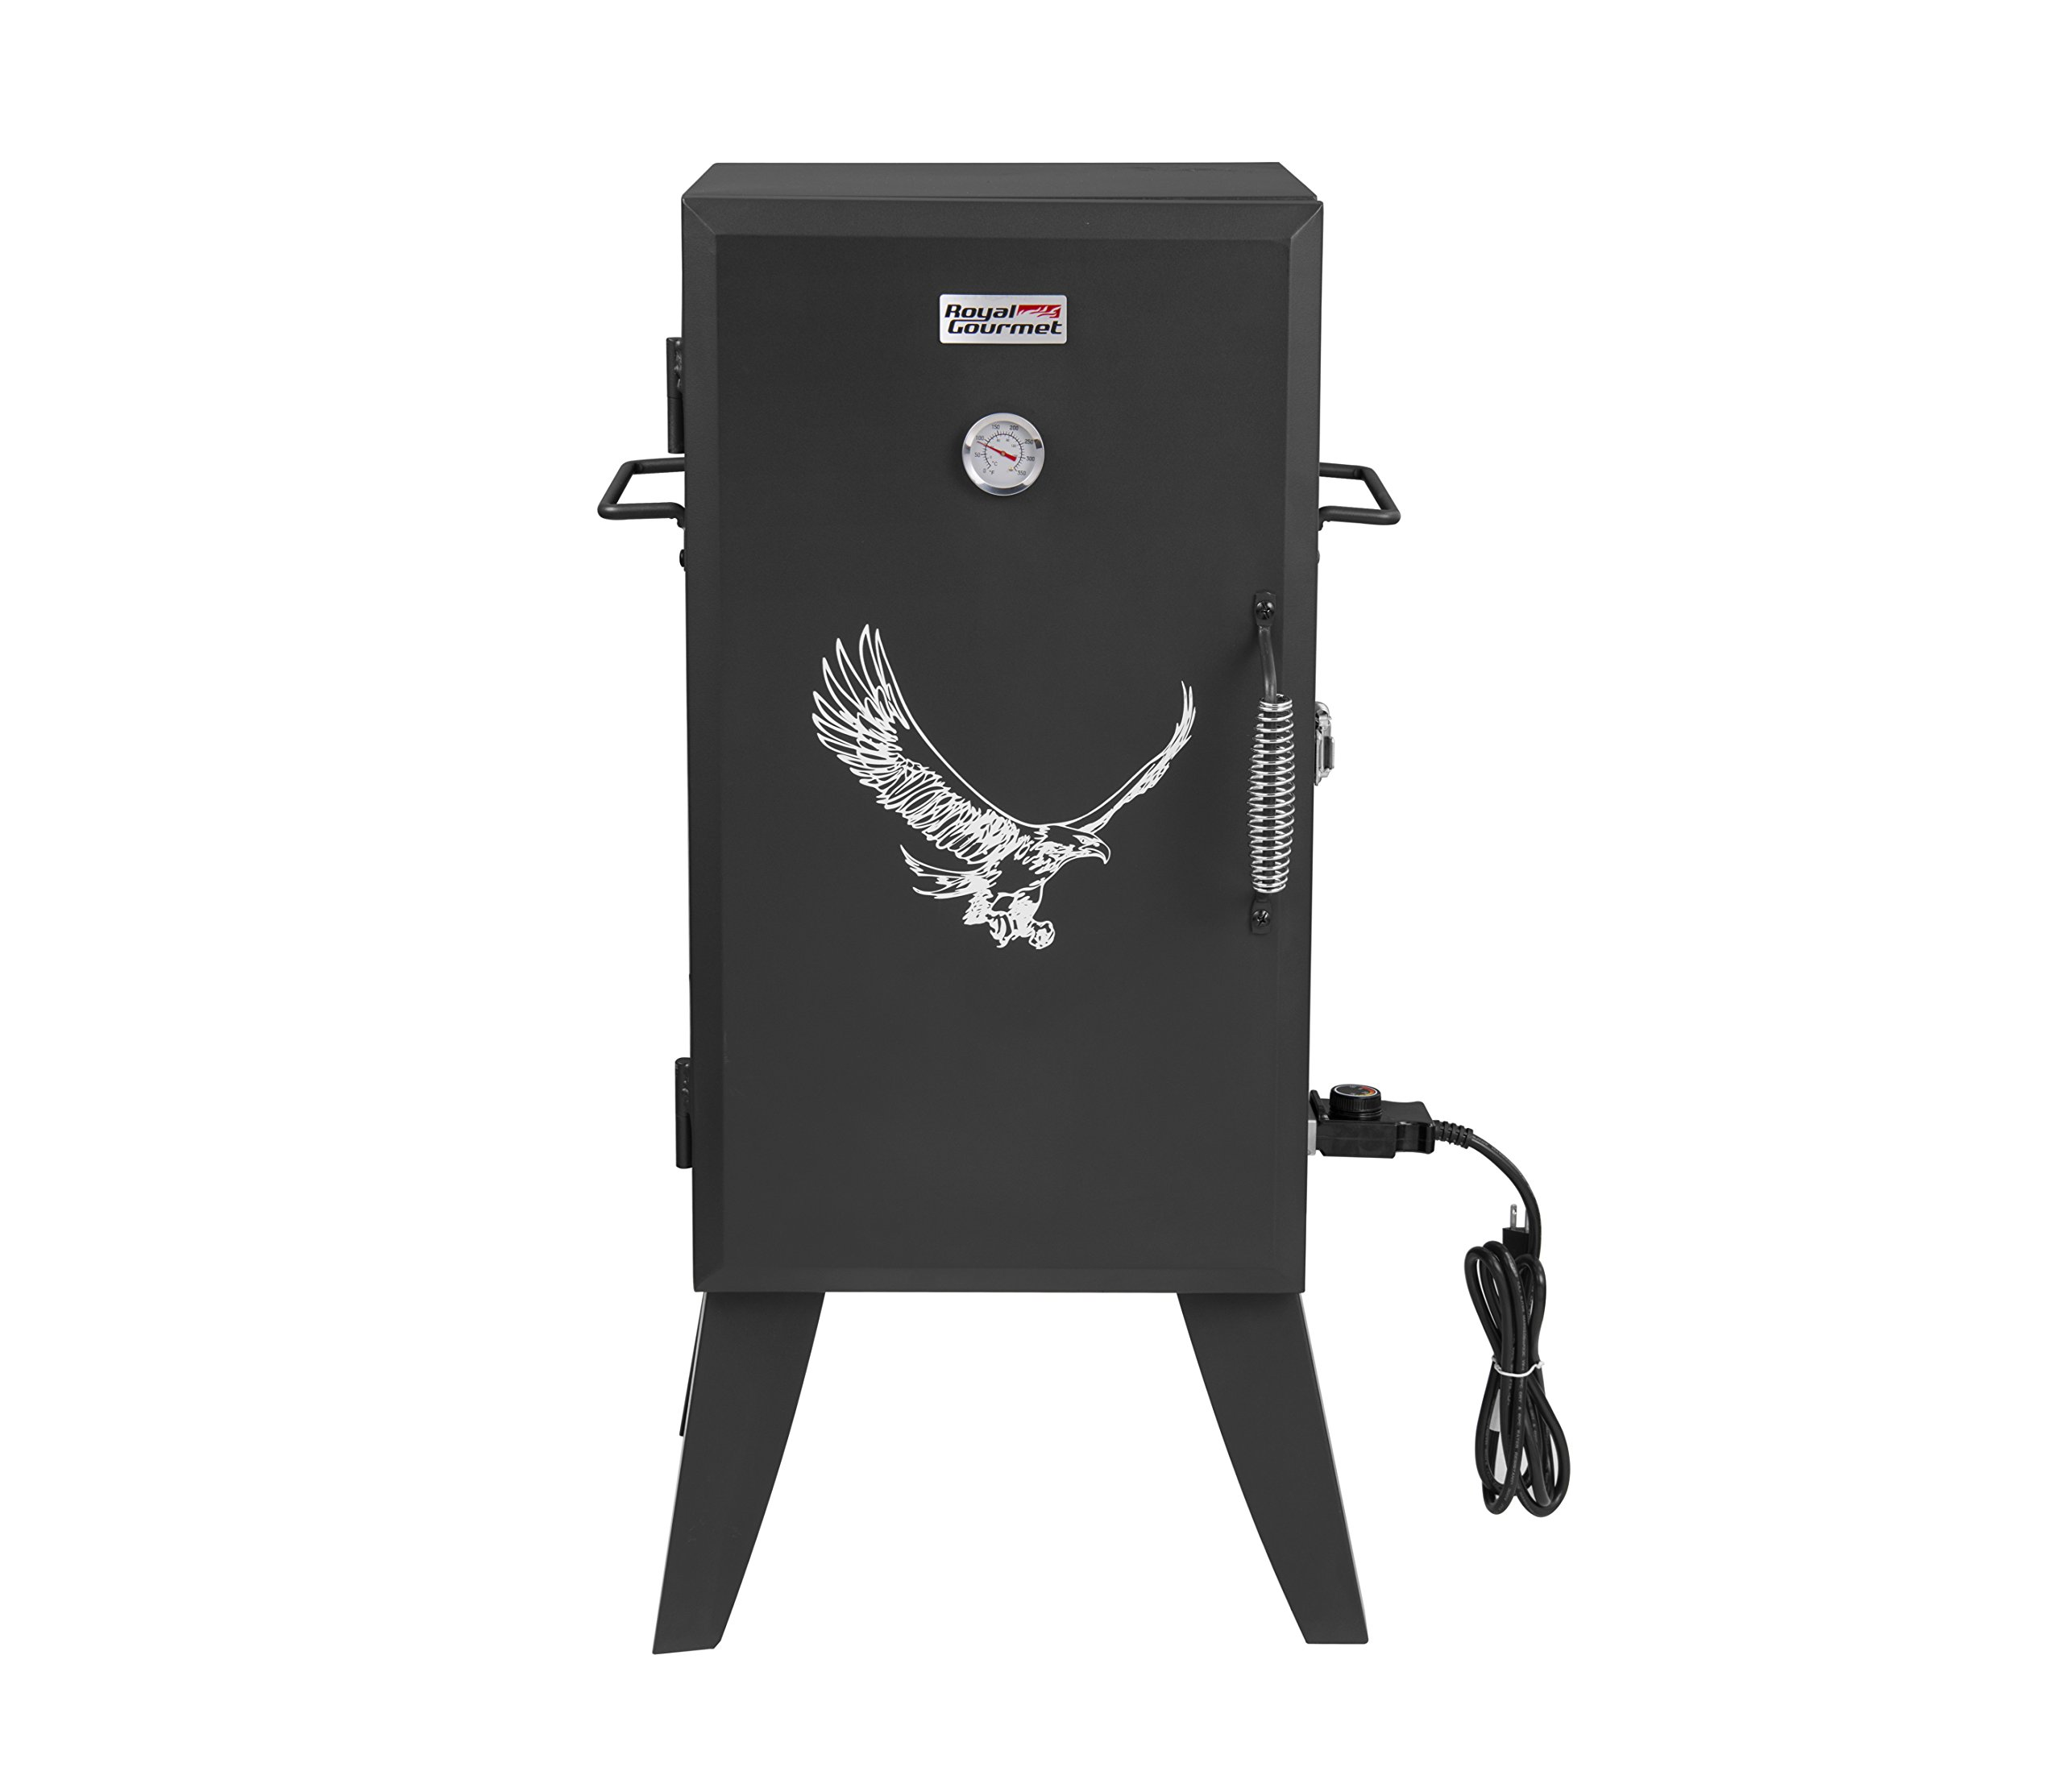 RoyalGourmet 28 Inch Electric Smoker with Adjustable Temperature Control by Royal Gourmet